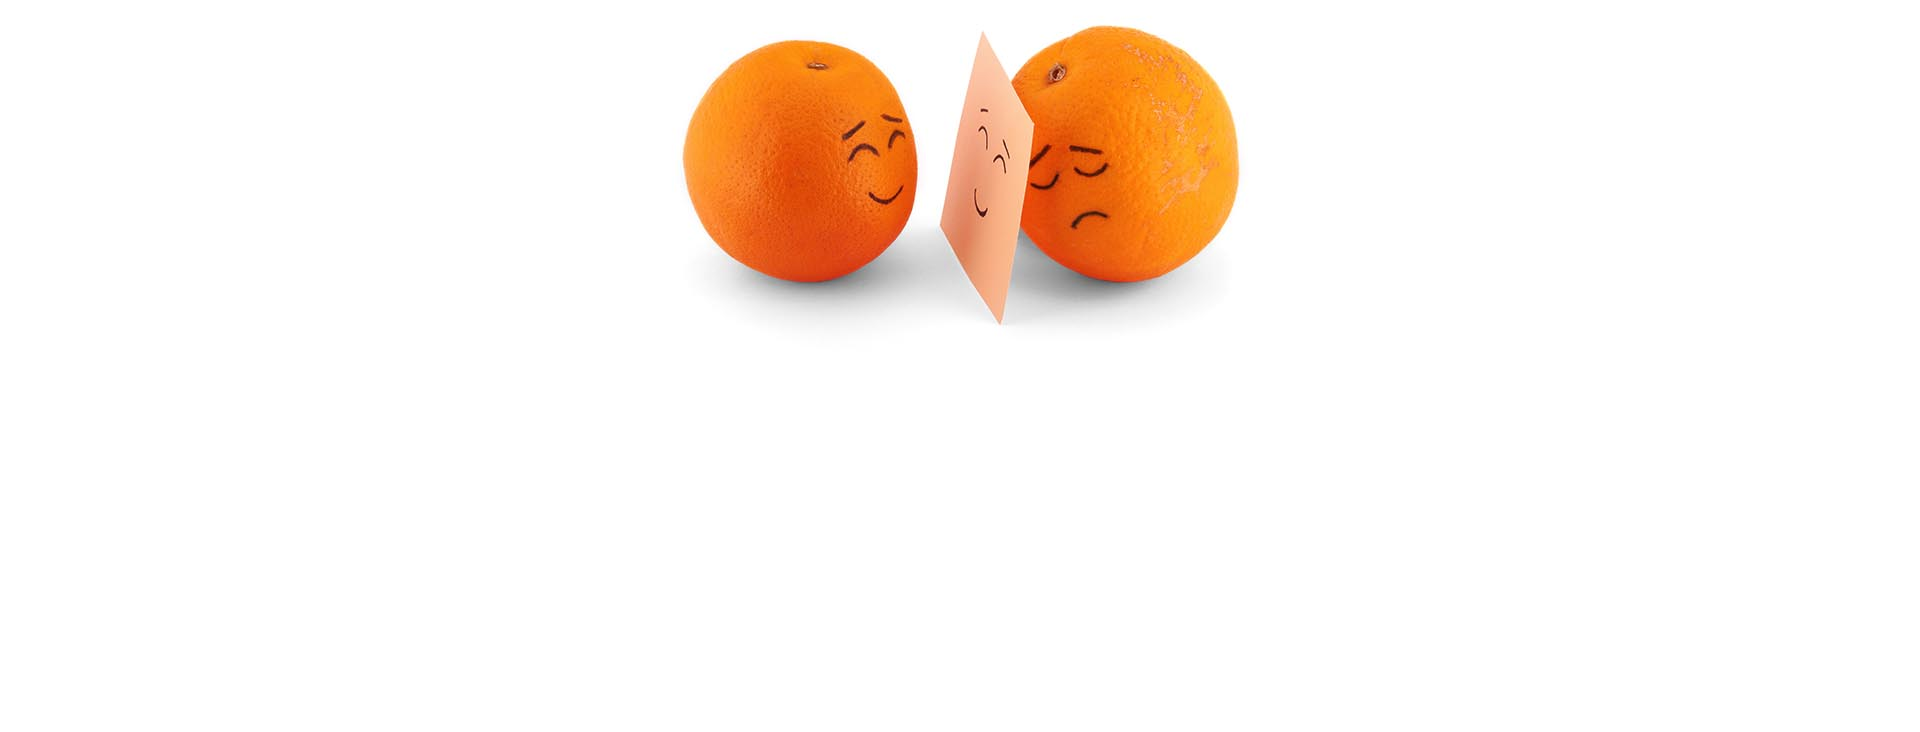 Oranges with faces: One hides emotions and feelings from the other